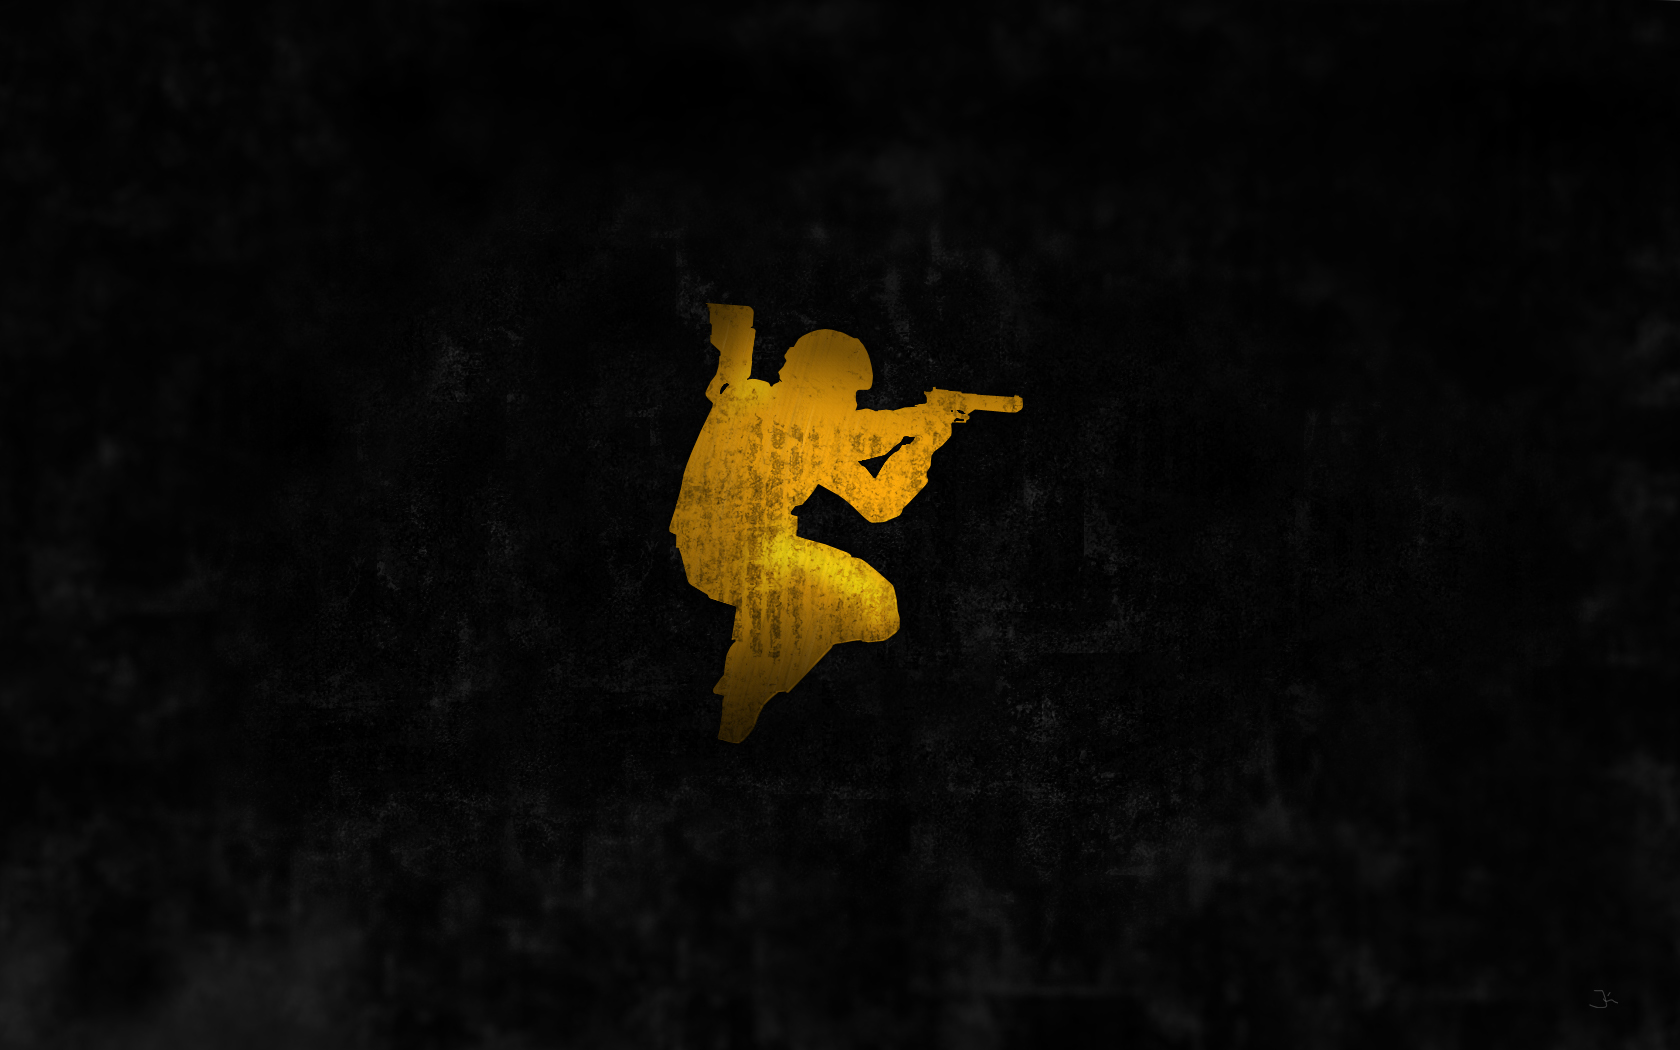 CS Counter strike Source Wallpaper HD is a hi res Wallpaper 1680x1050